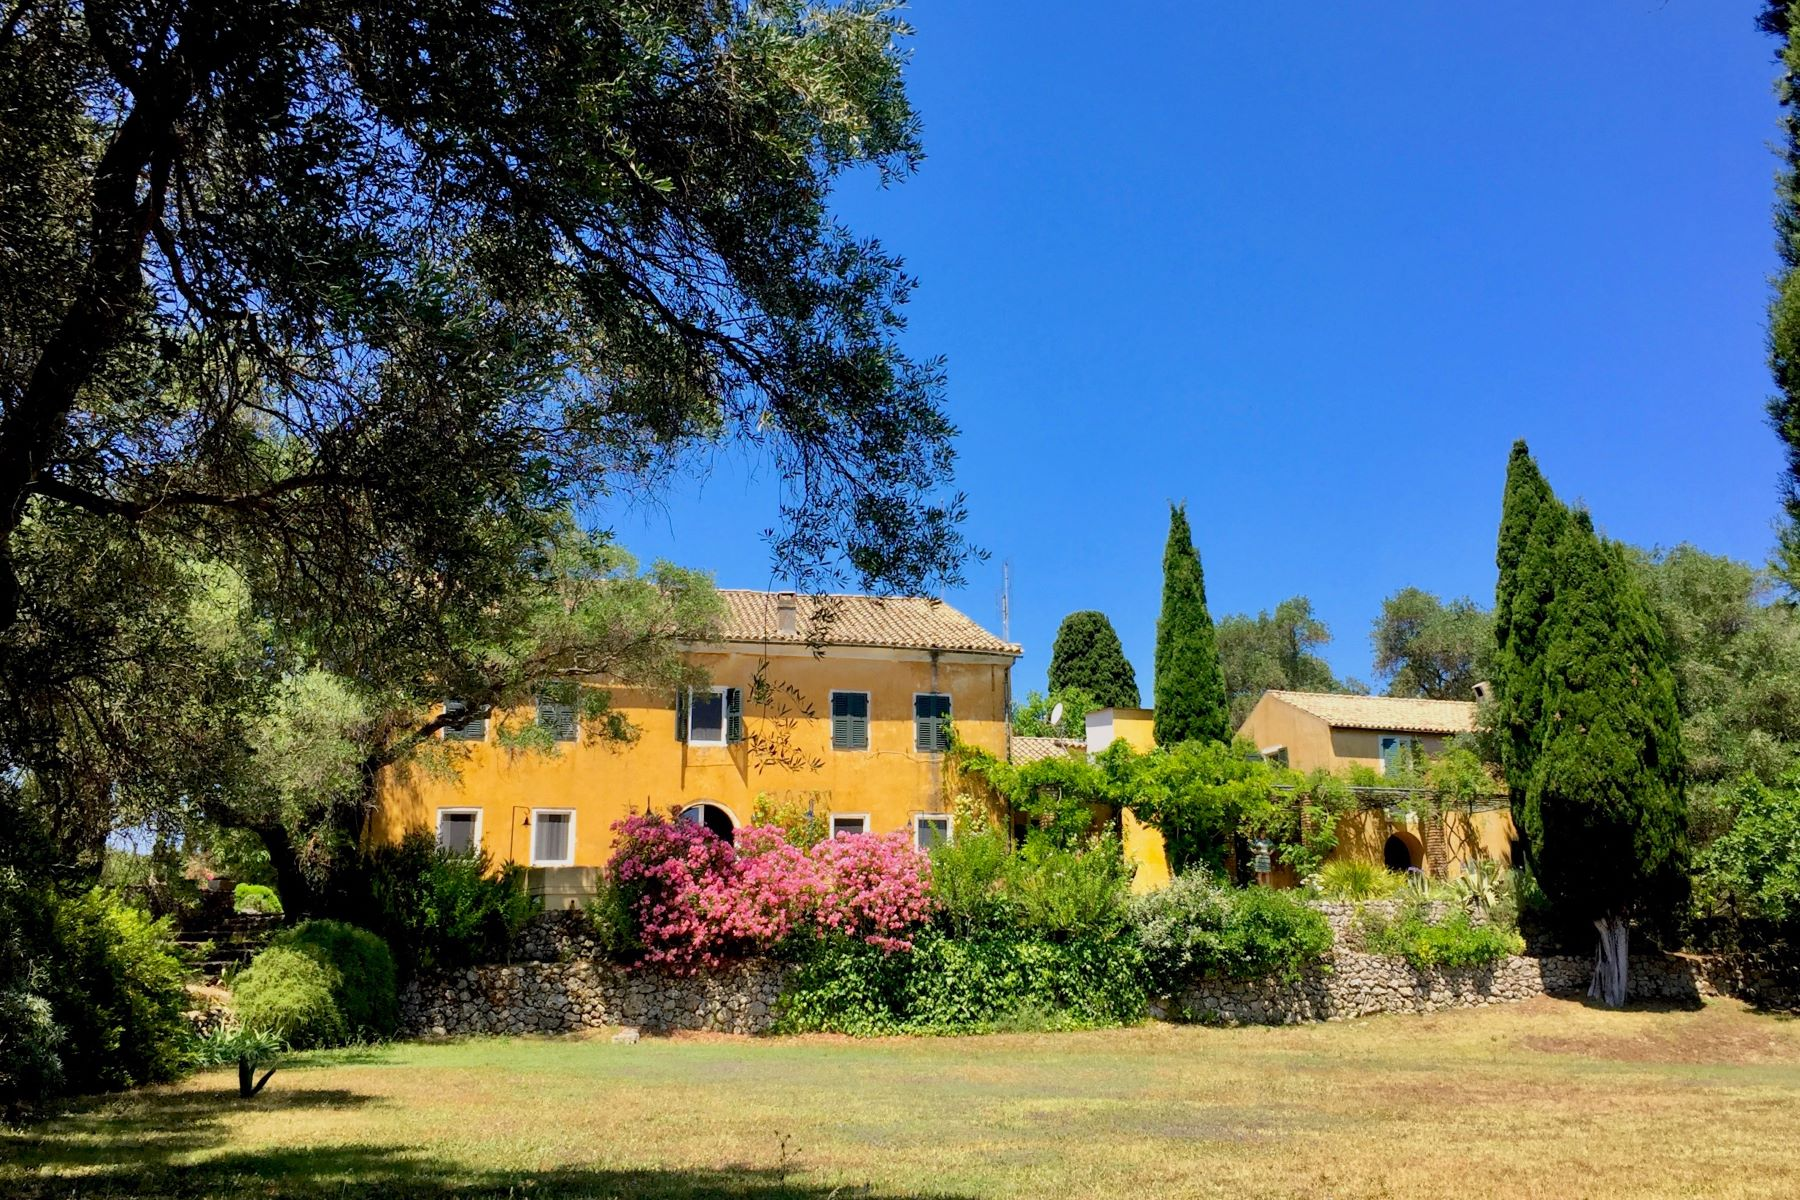 Single Family Home for Sale at Secret Garden Corfu, Ionian Islands Greece